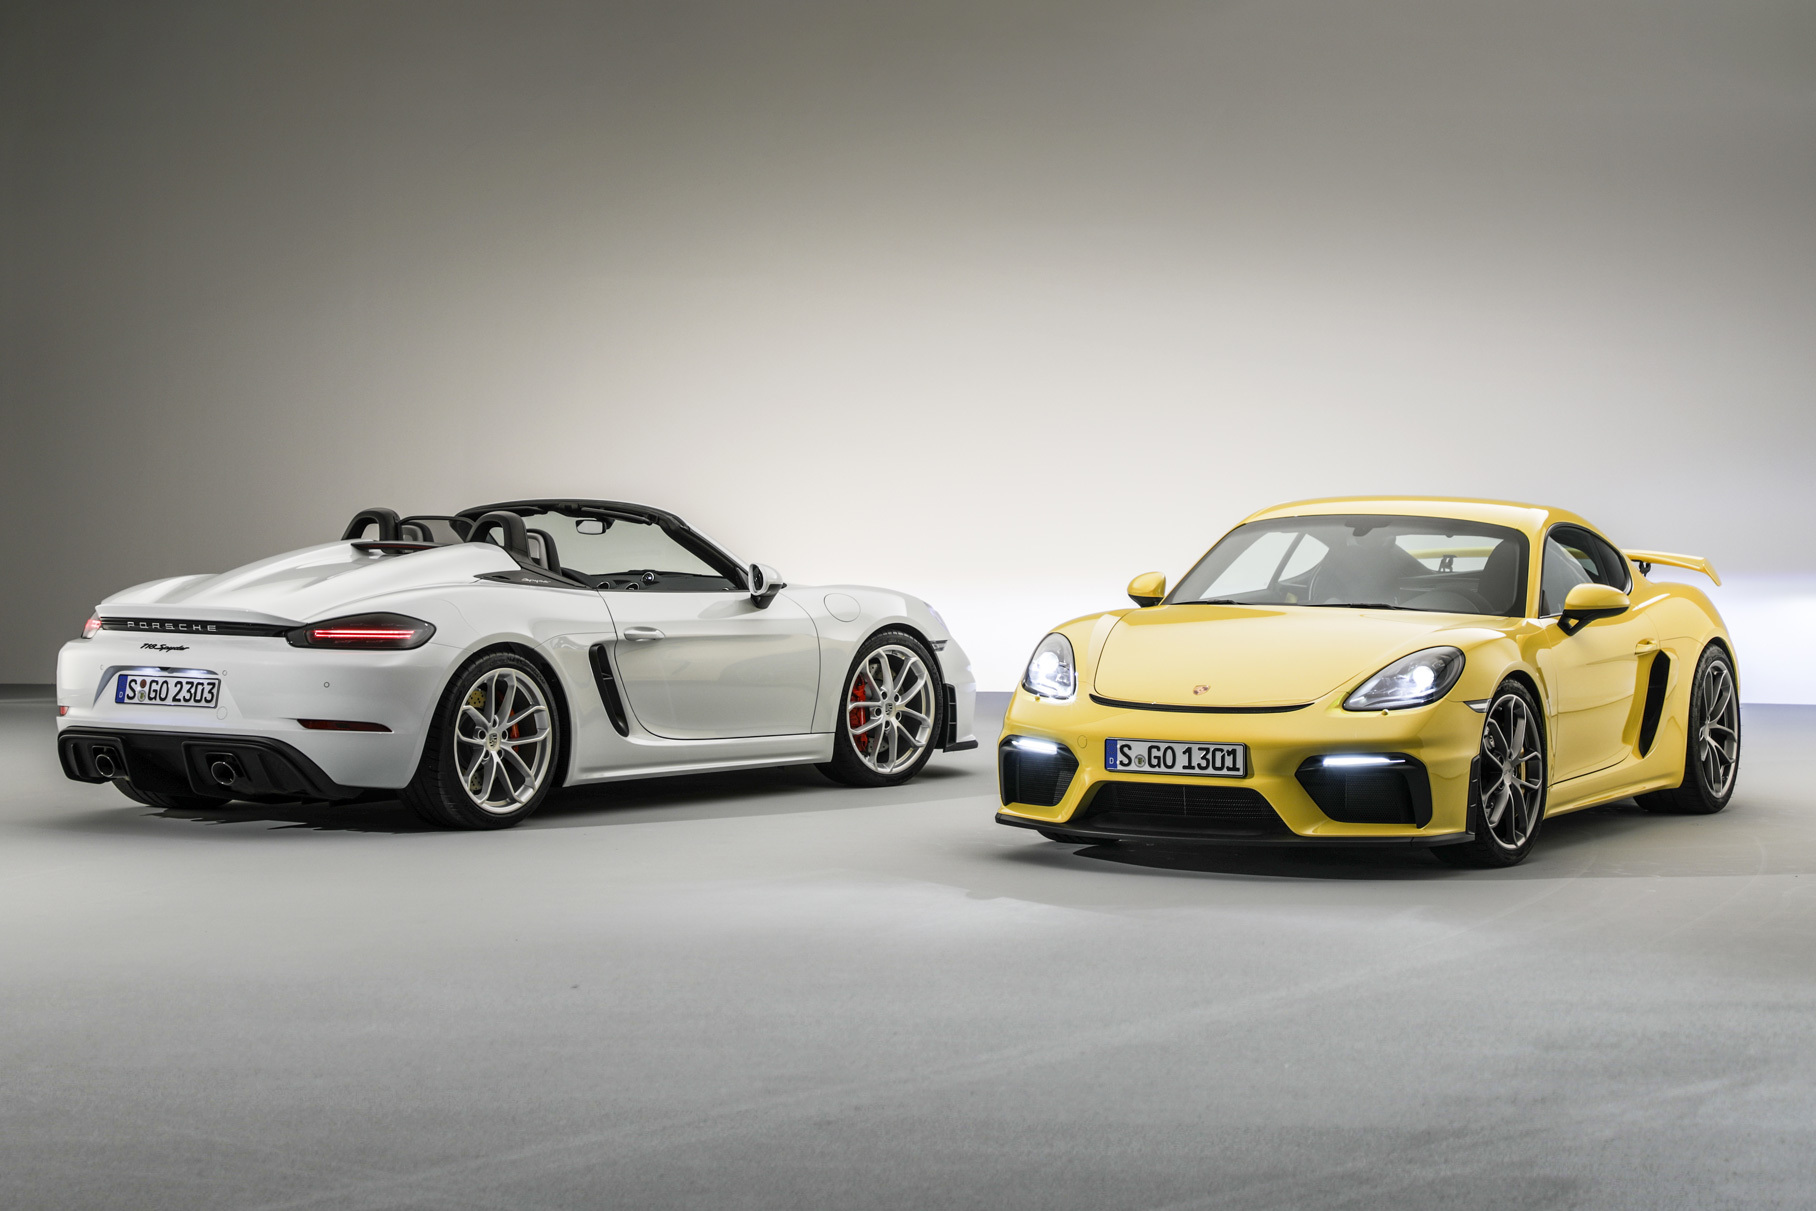 As you probably remember, Porsche switched its Boxster and Cayman models from six to four cylinders four years ago. This caused harsh criticism and loss of sales worldwide – but eventually proved the right decision, as Dr. Frank-Stefan Walliser now explains.